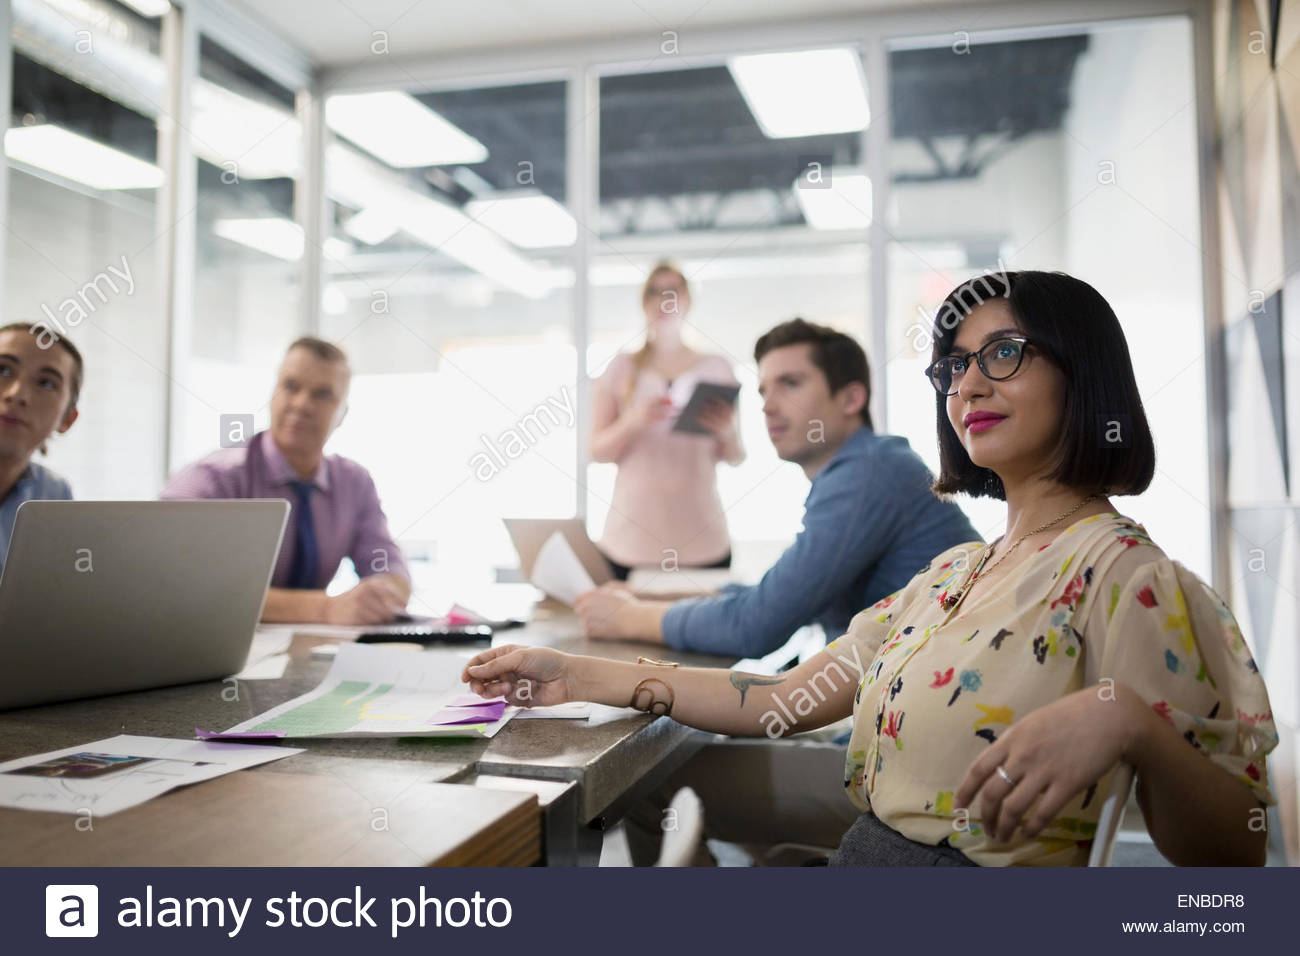 Réunion Smiling businesswoman in conference room Photo Stock